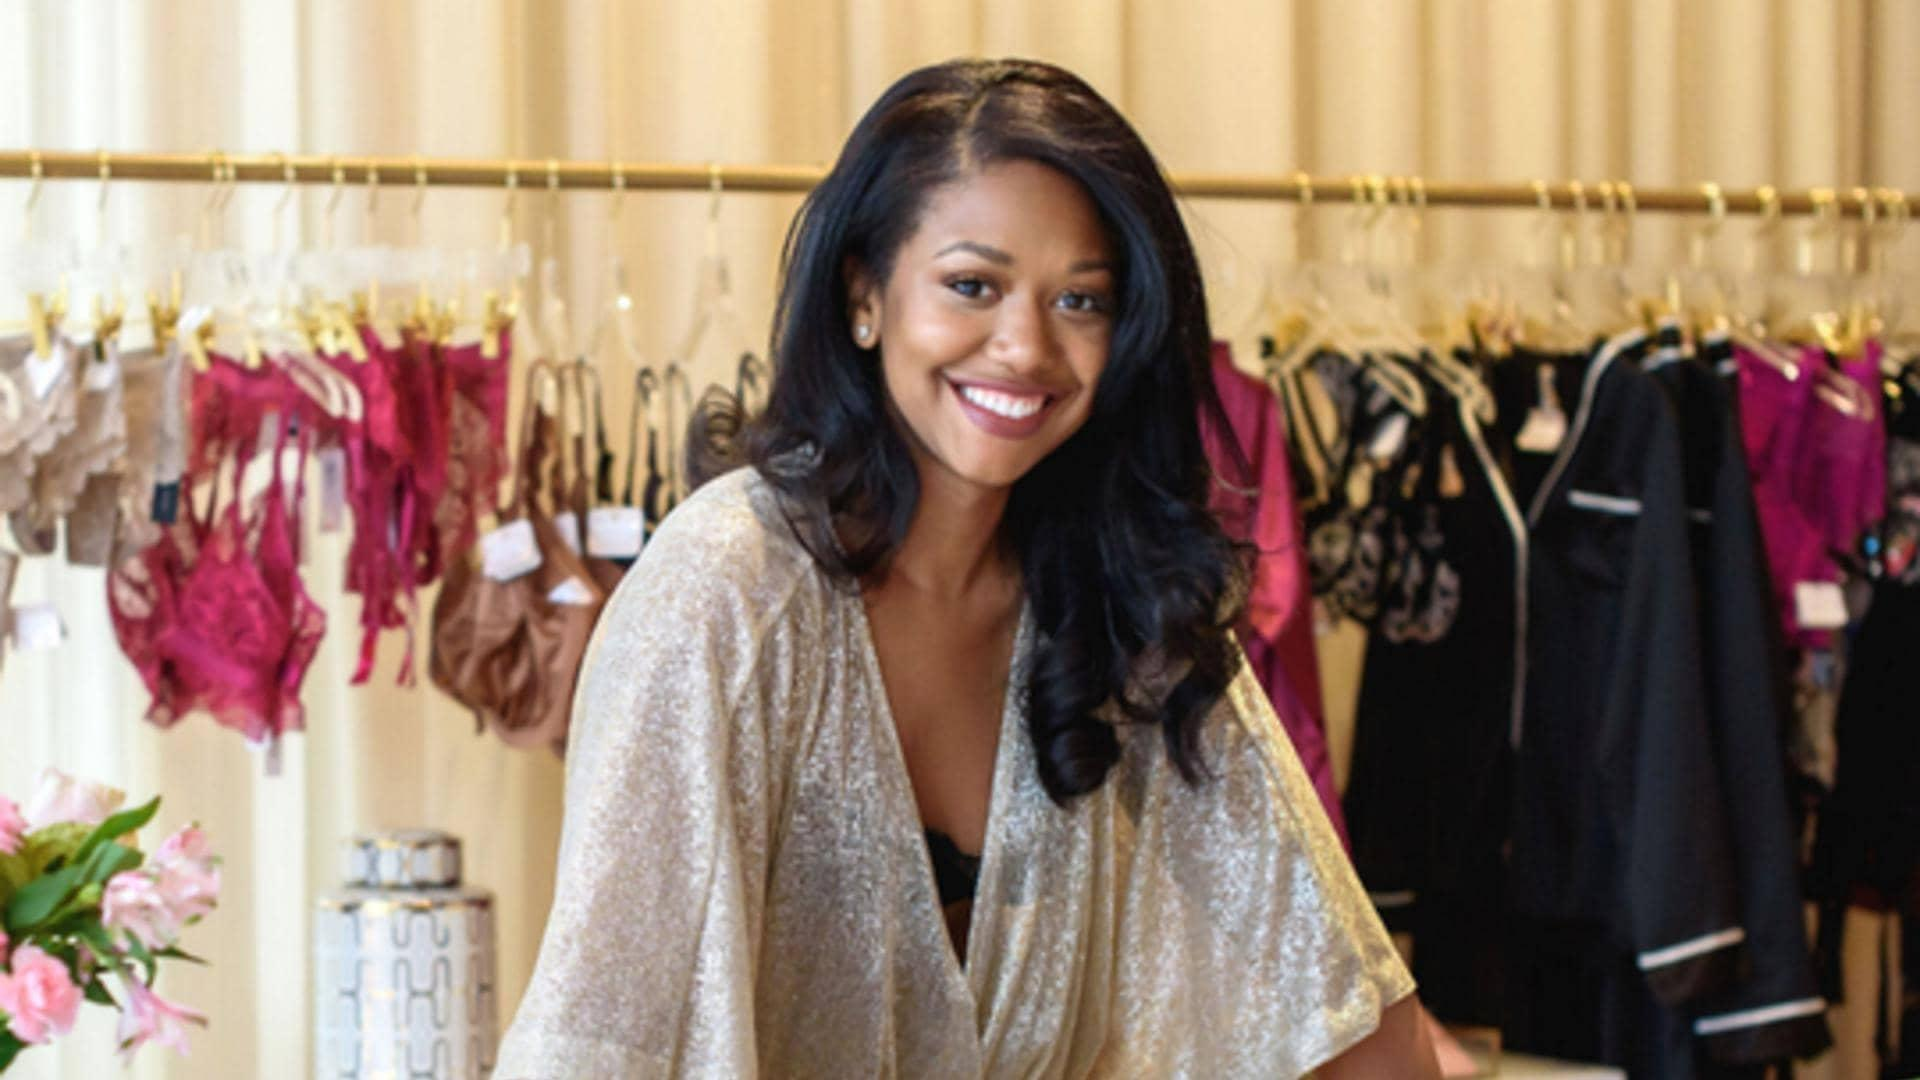 Jasmine Jones is the founder and CEO of Cherry Blossom Intimates.